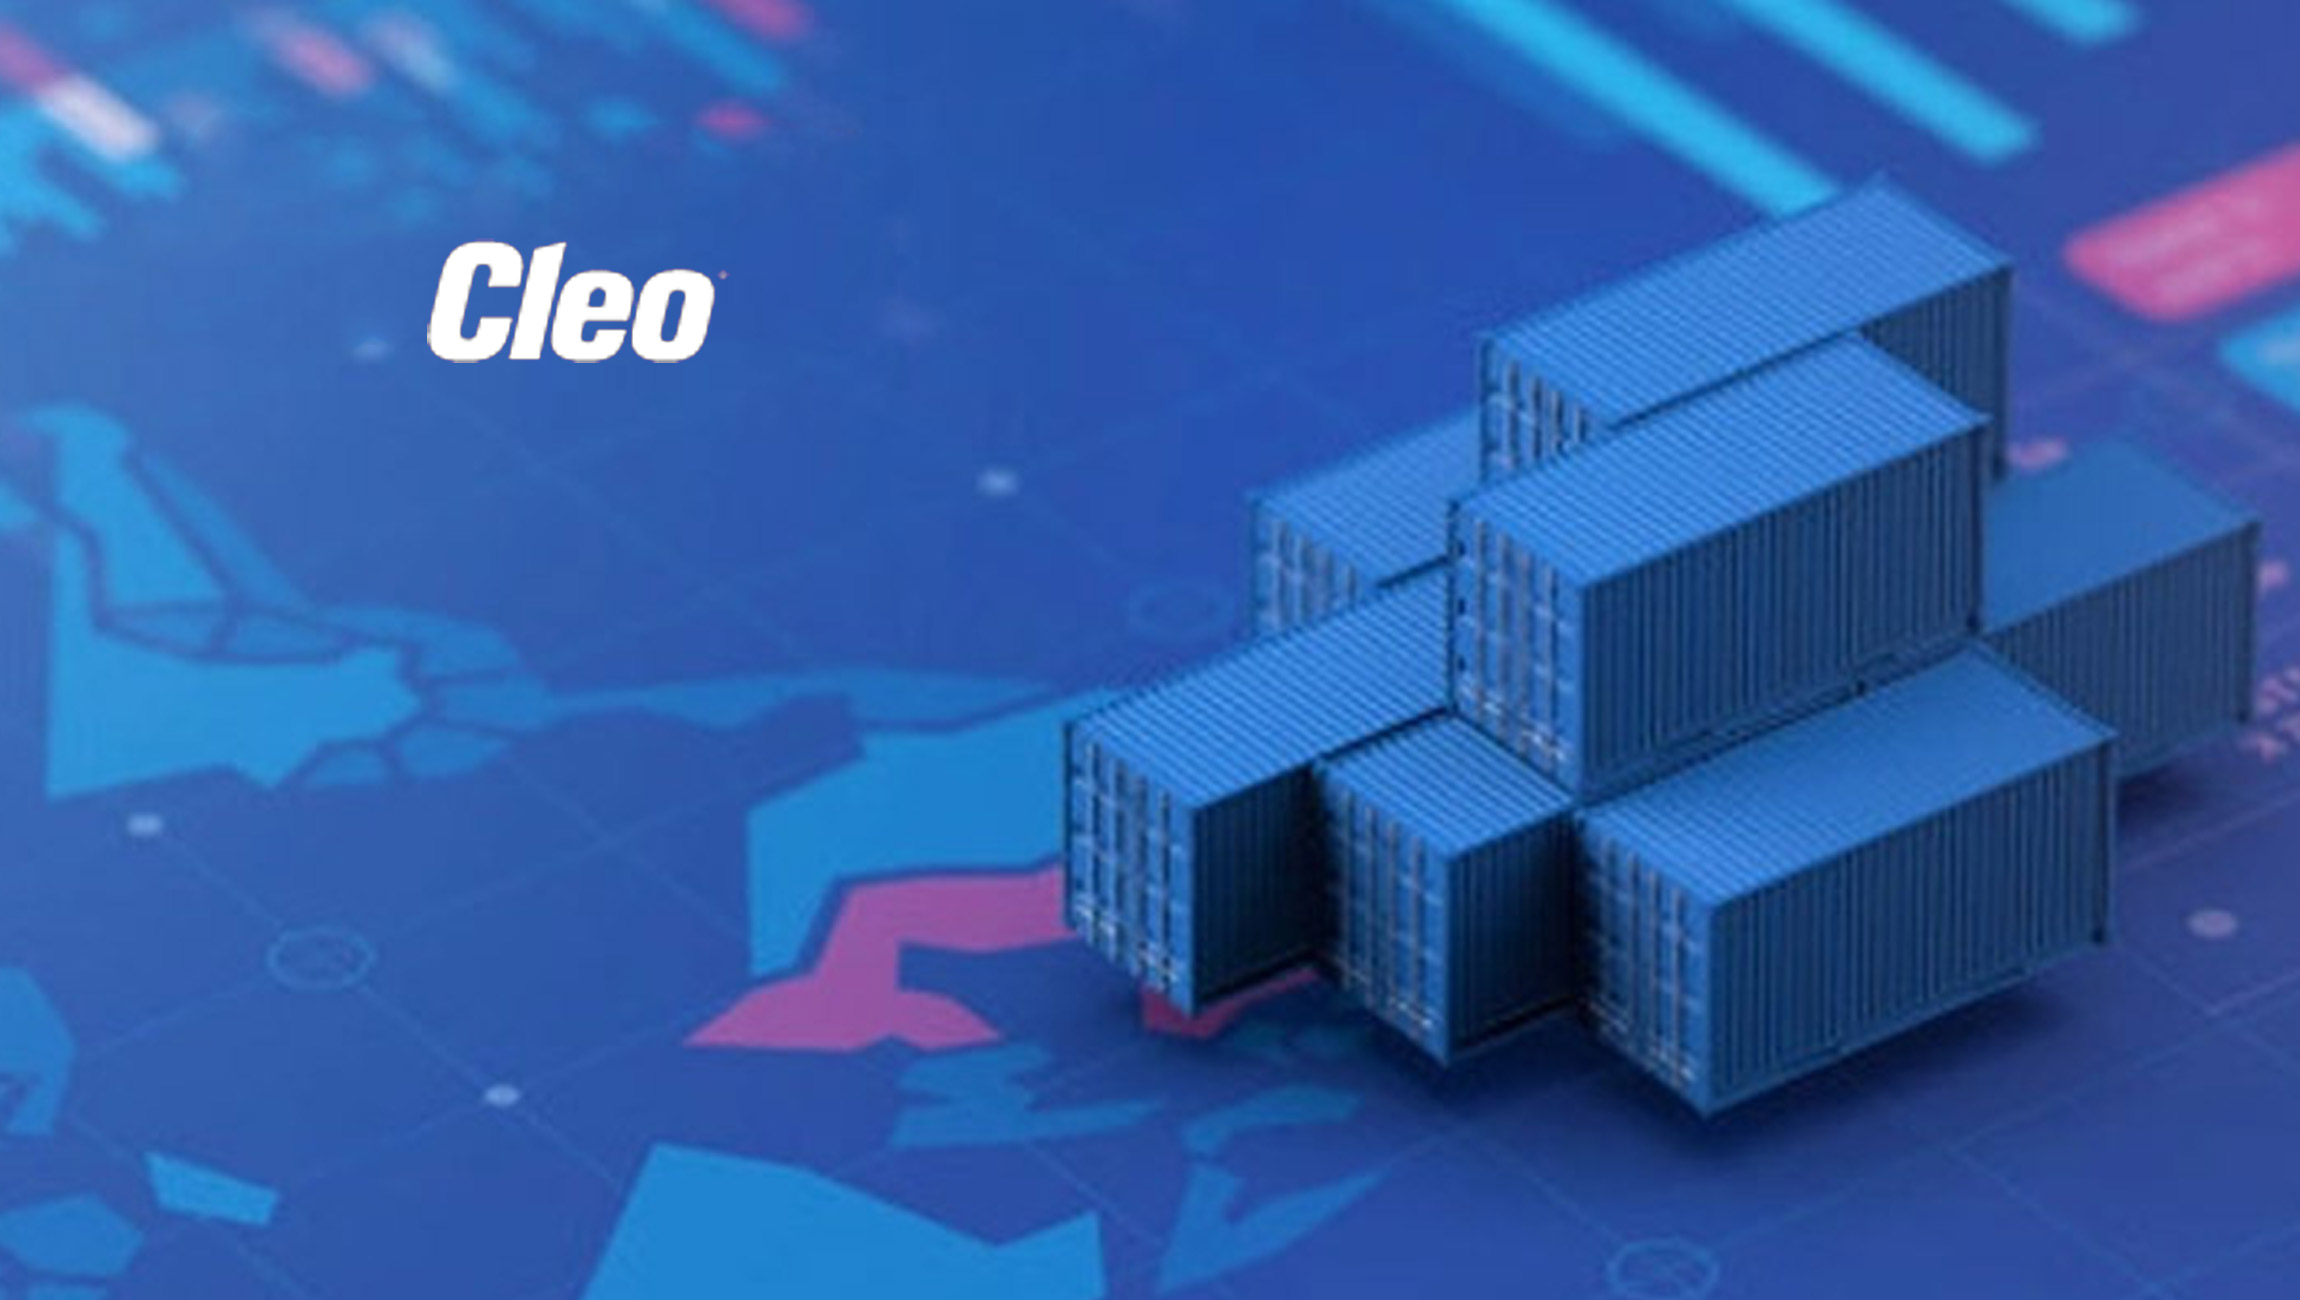 Cleo Integration Cloud Accelerates Growth for Logistics and Transportation Businesses